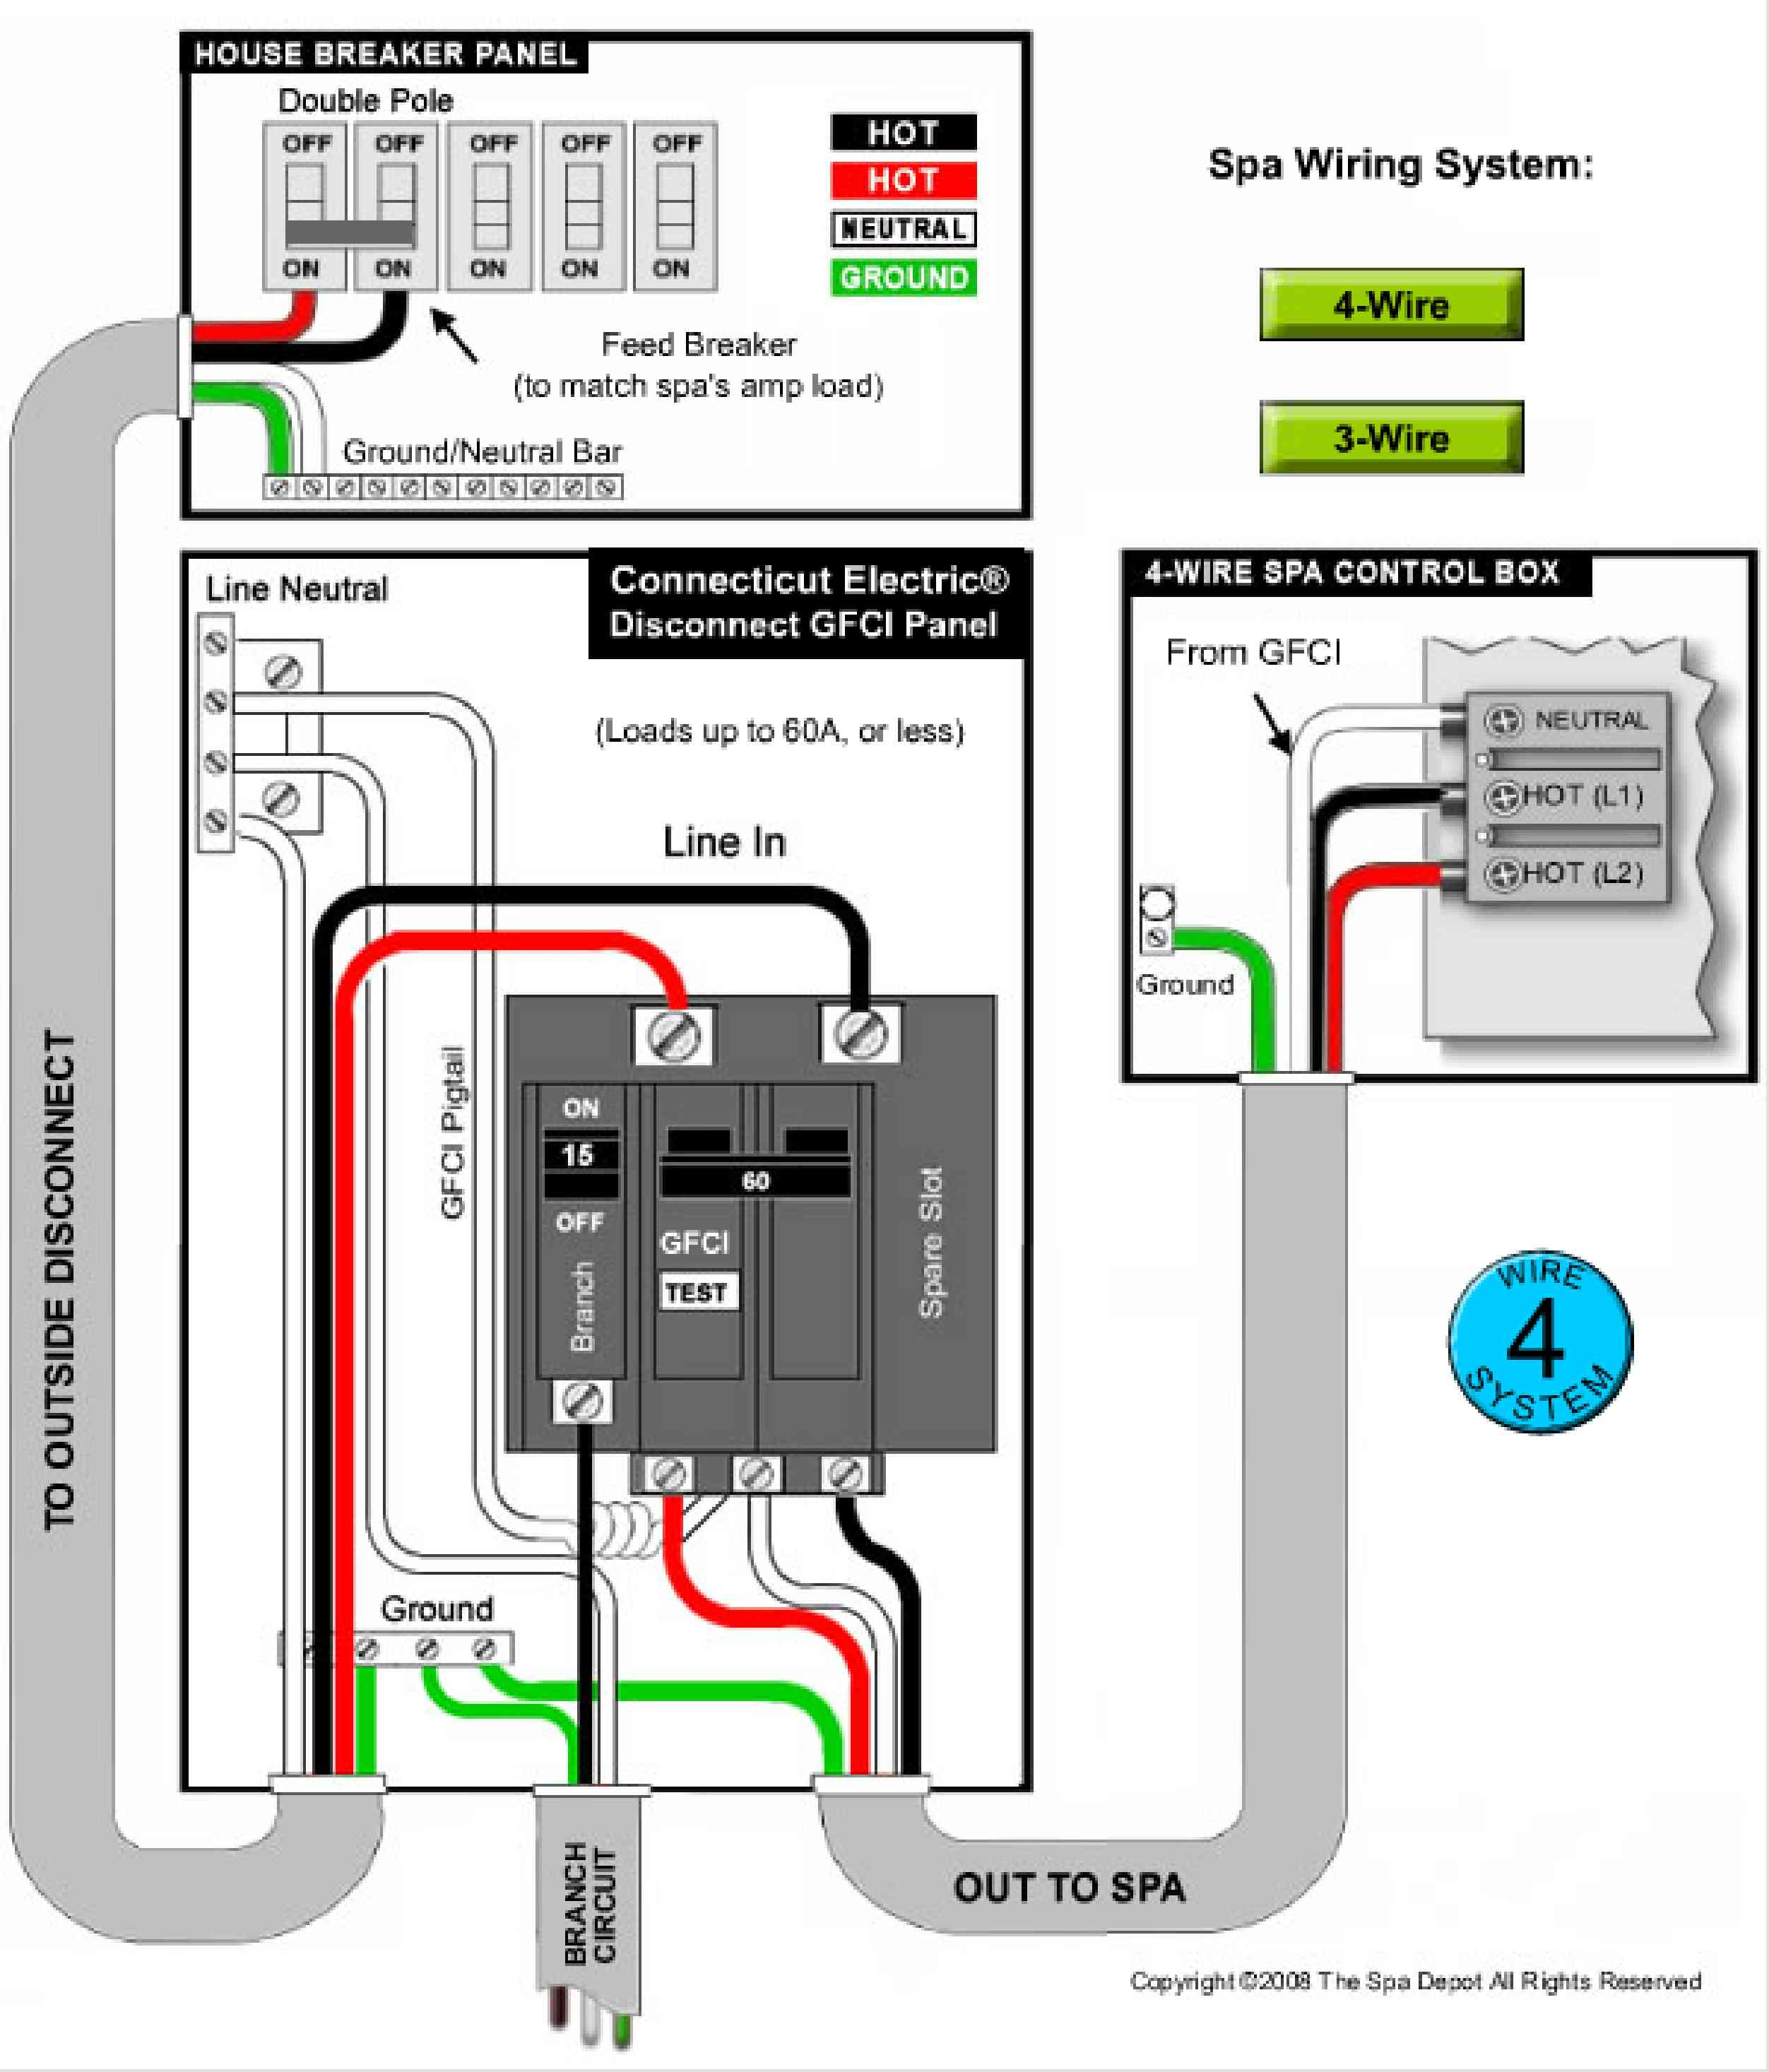 Panel With 2 Pole Circuits Wiring Diagram - Wiring Diagram Services •